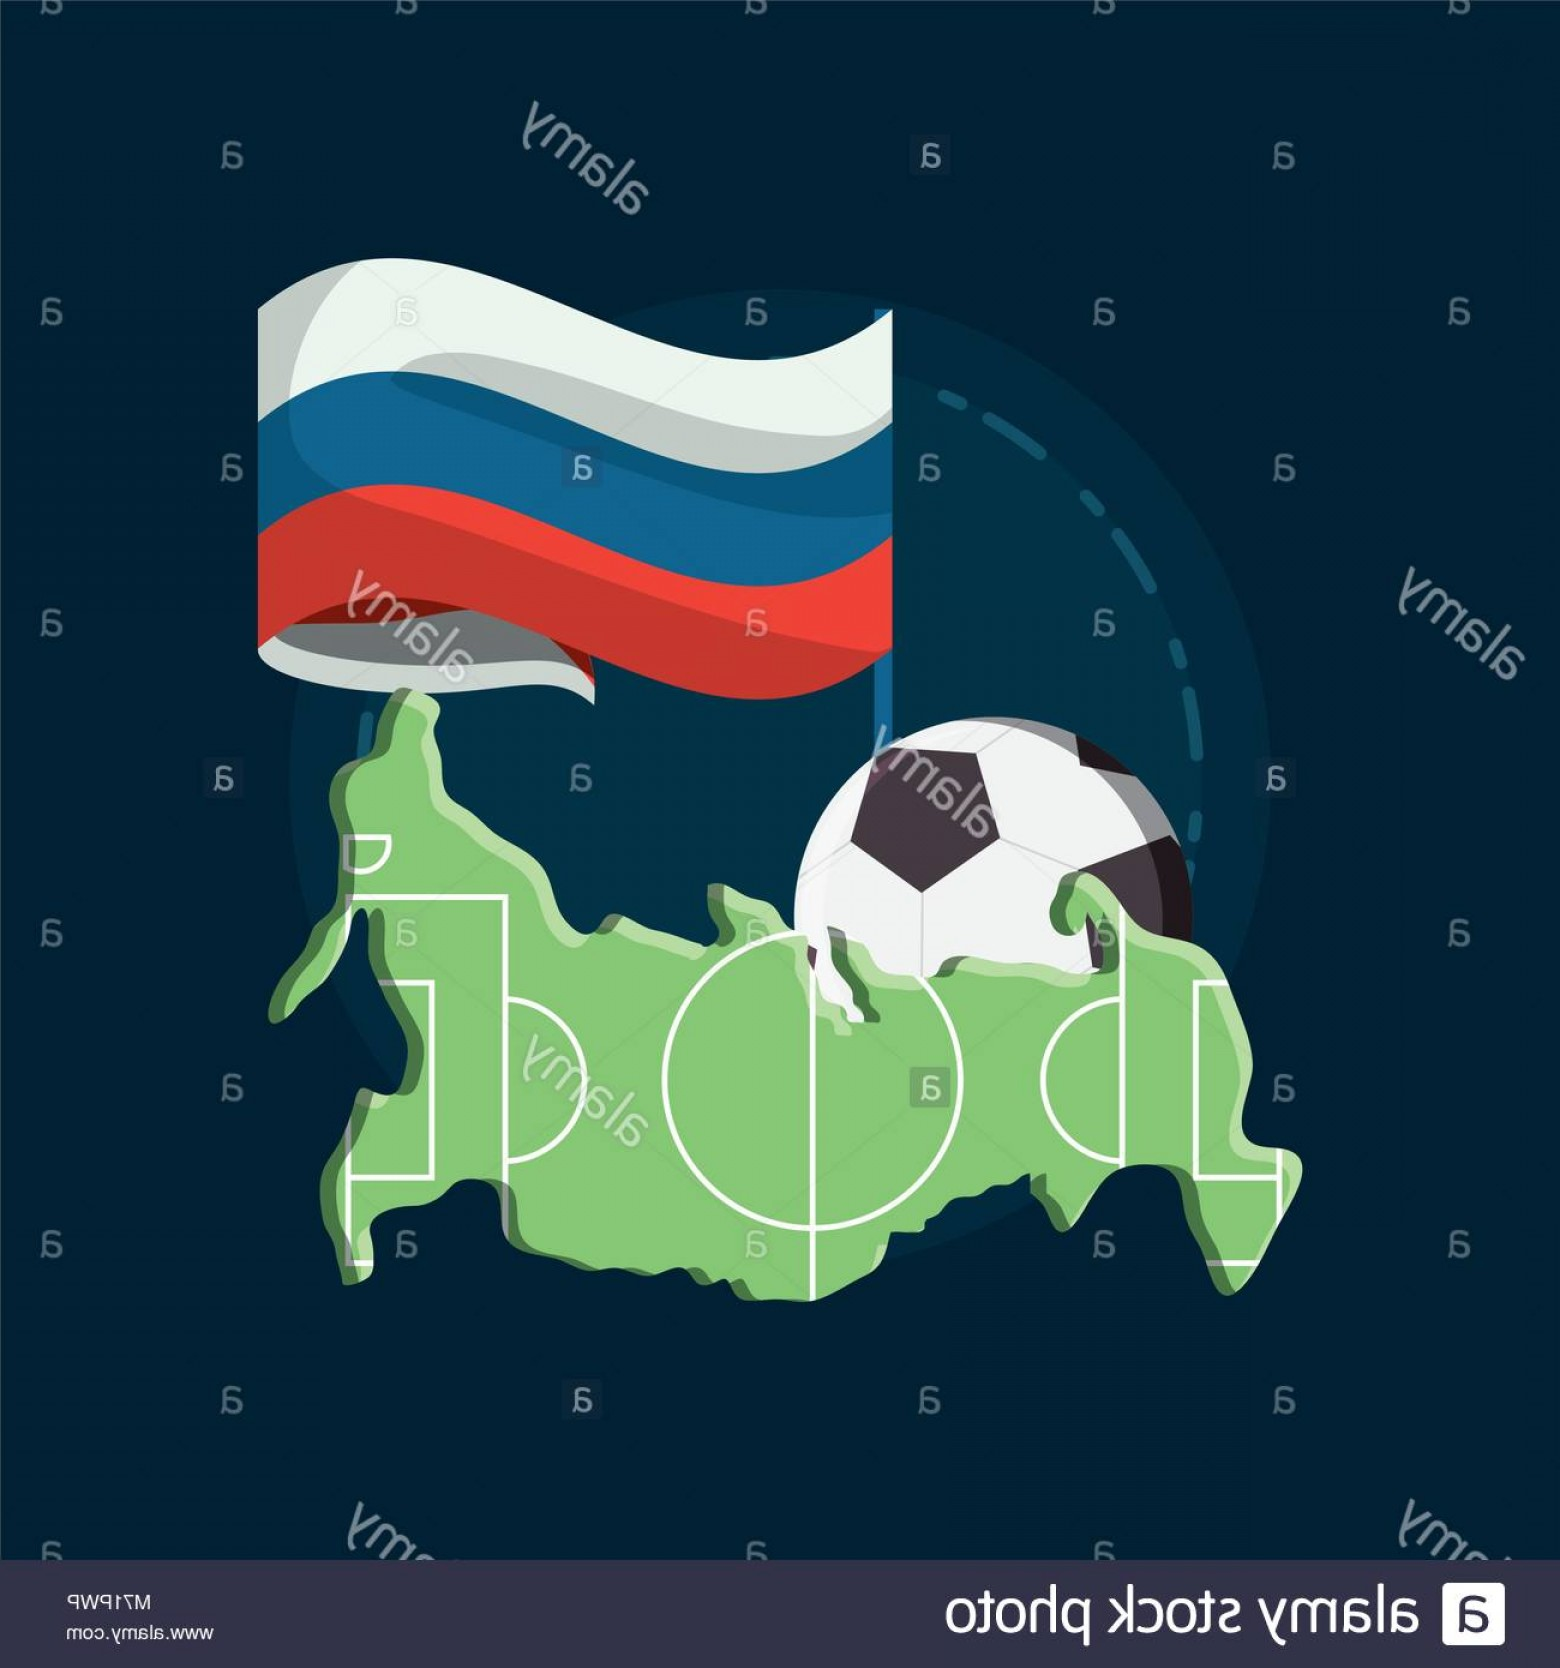 Soccer Blue Background Vector Graphics: Stock Photo Russian Flag And Map With Soccer Ball Over Blue Background Colorful